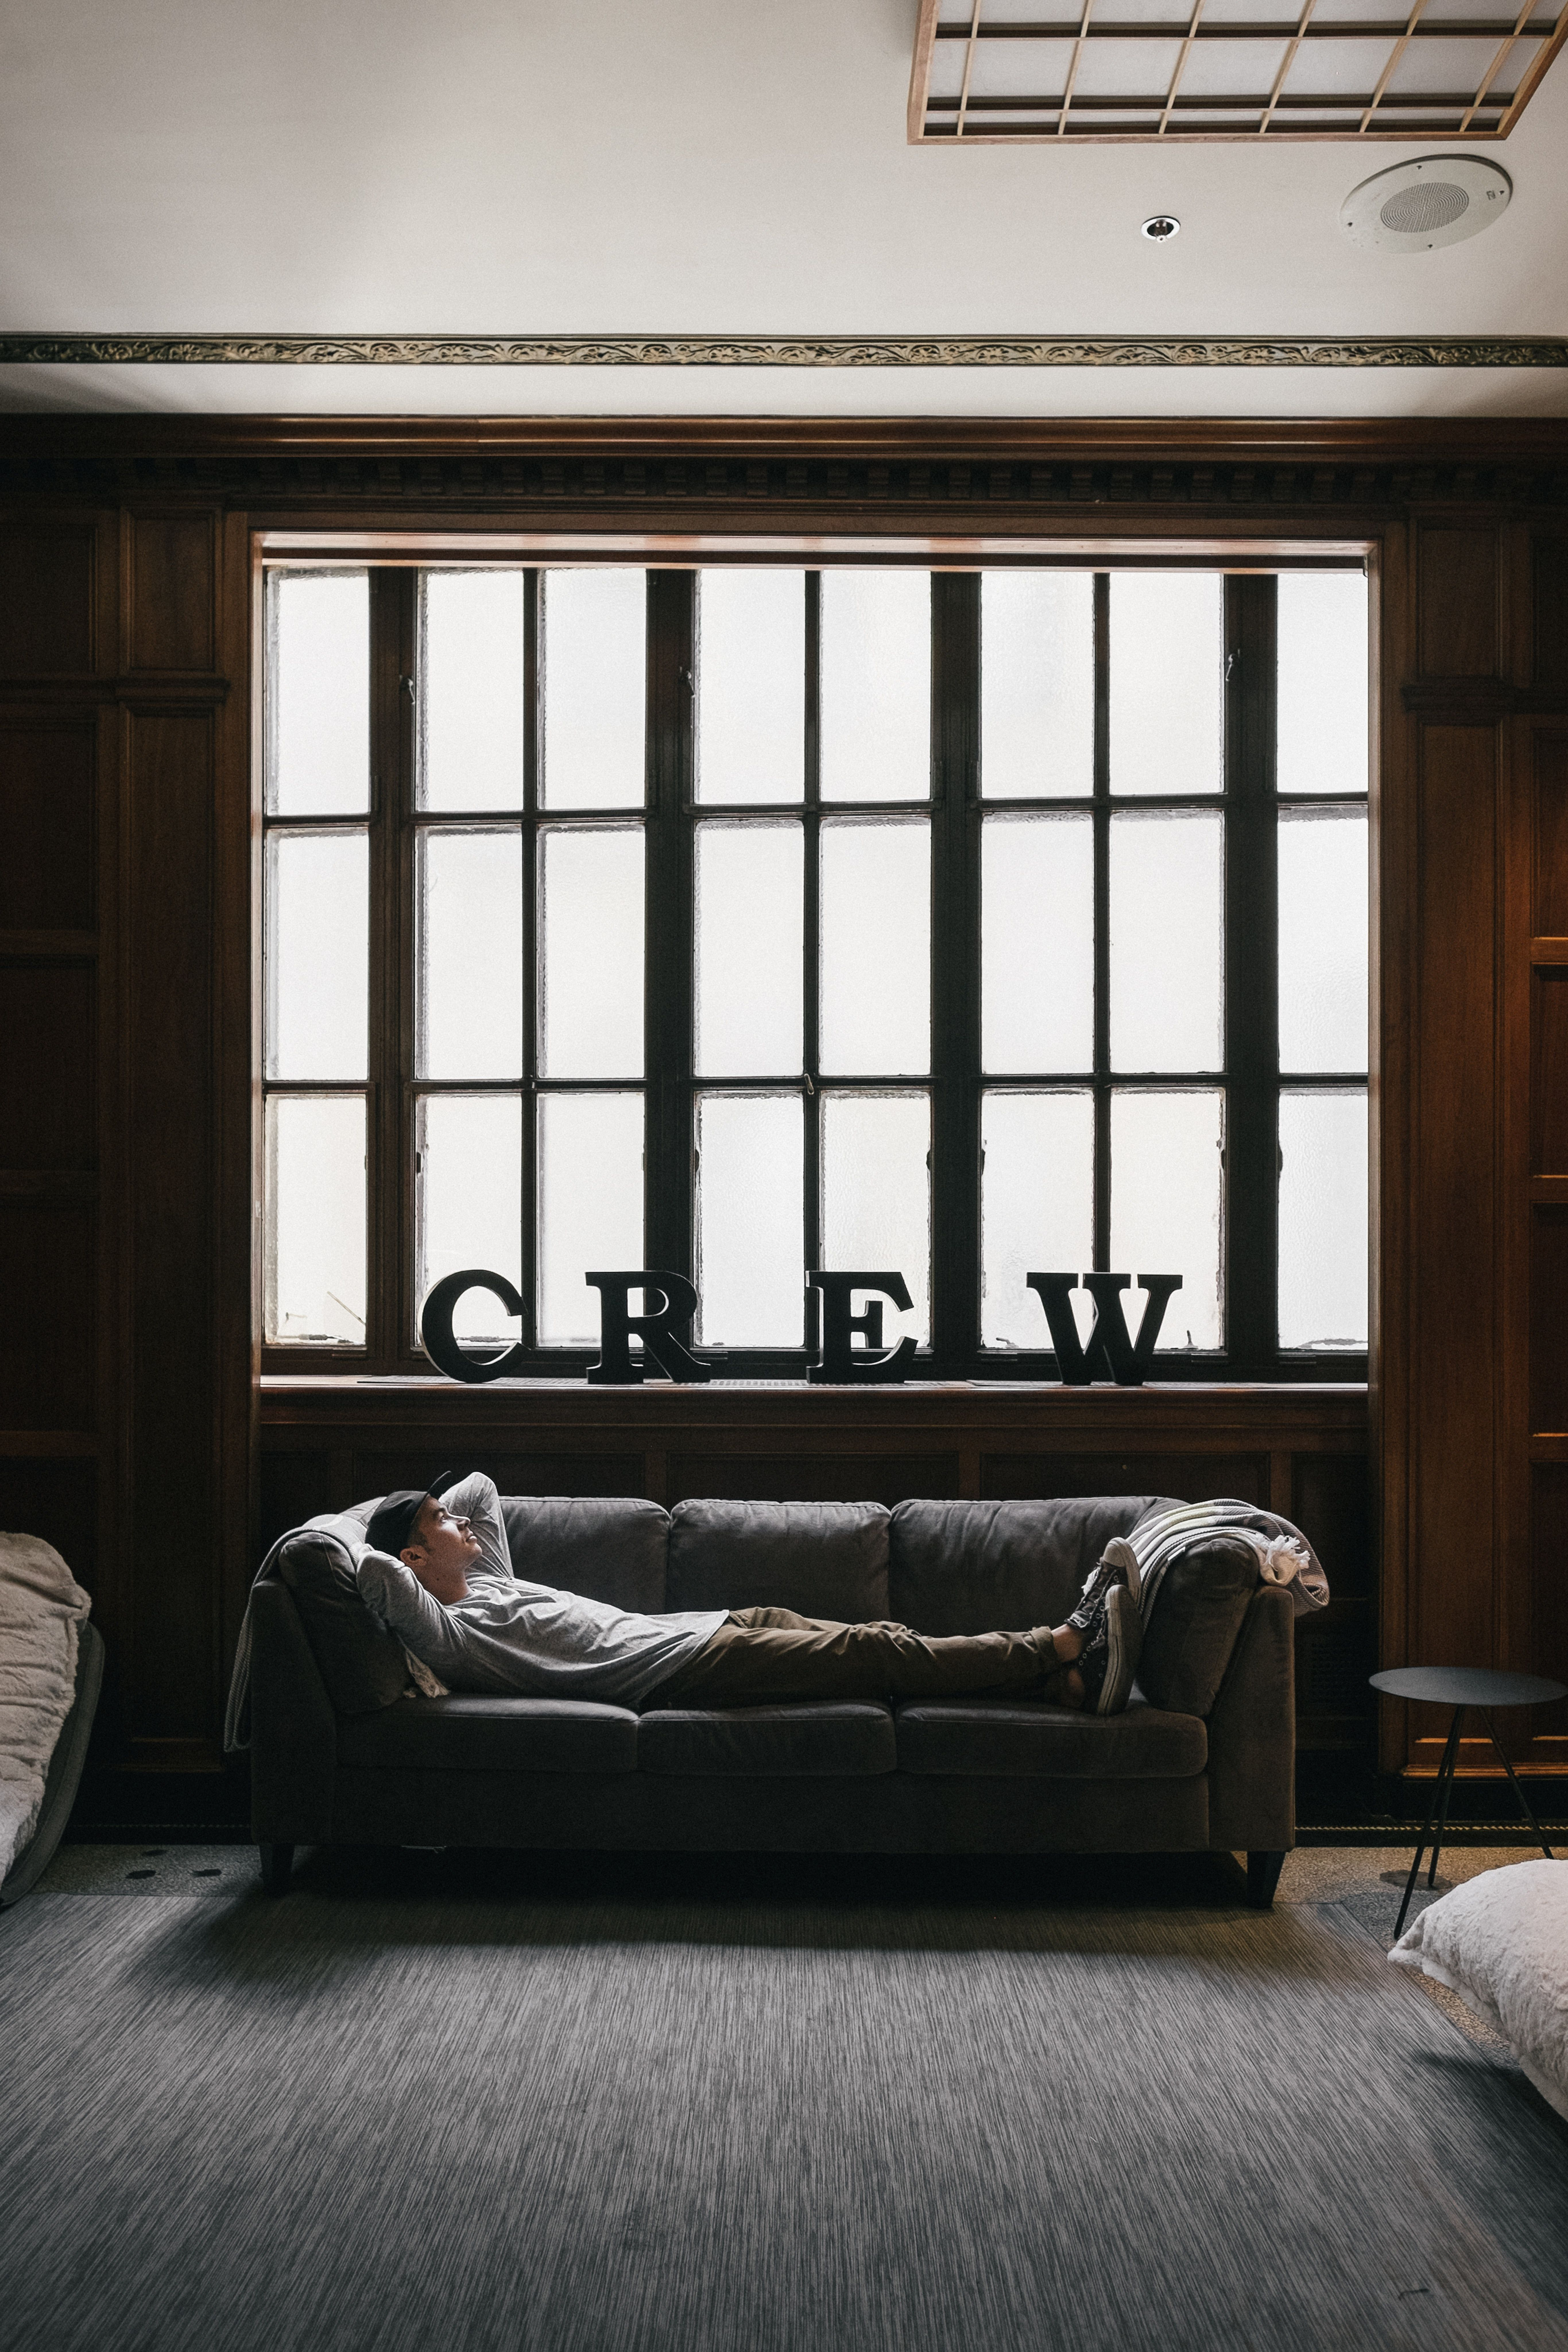 Couch, window, window ledge and window light HD photo by